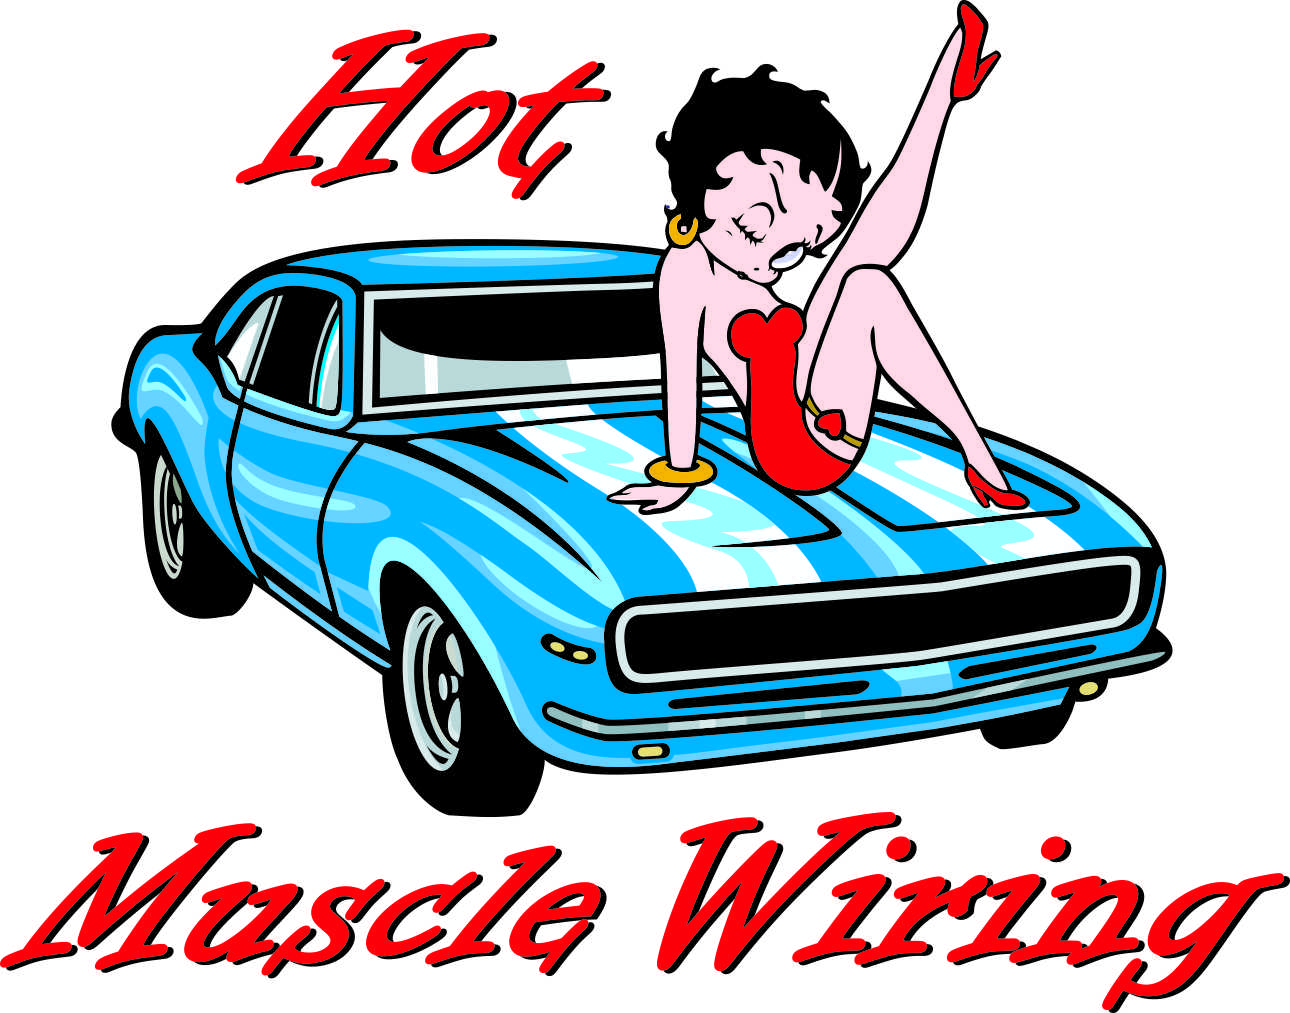 Hot Muscle Wiring FINAL w font